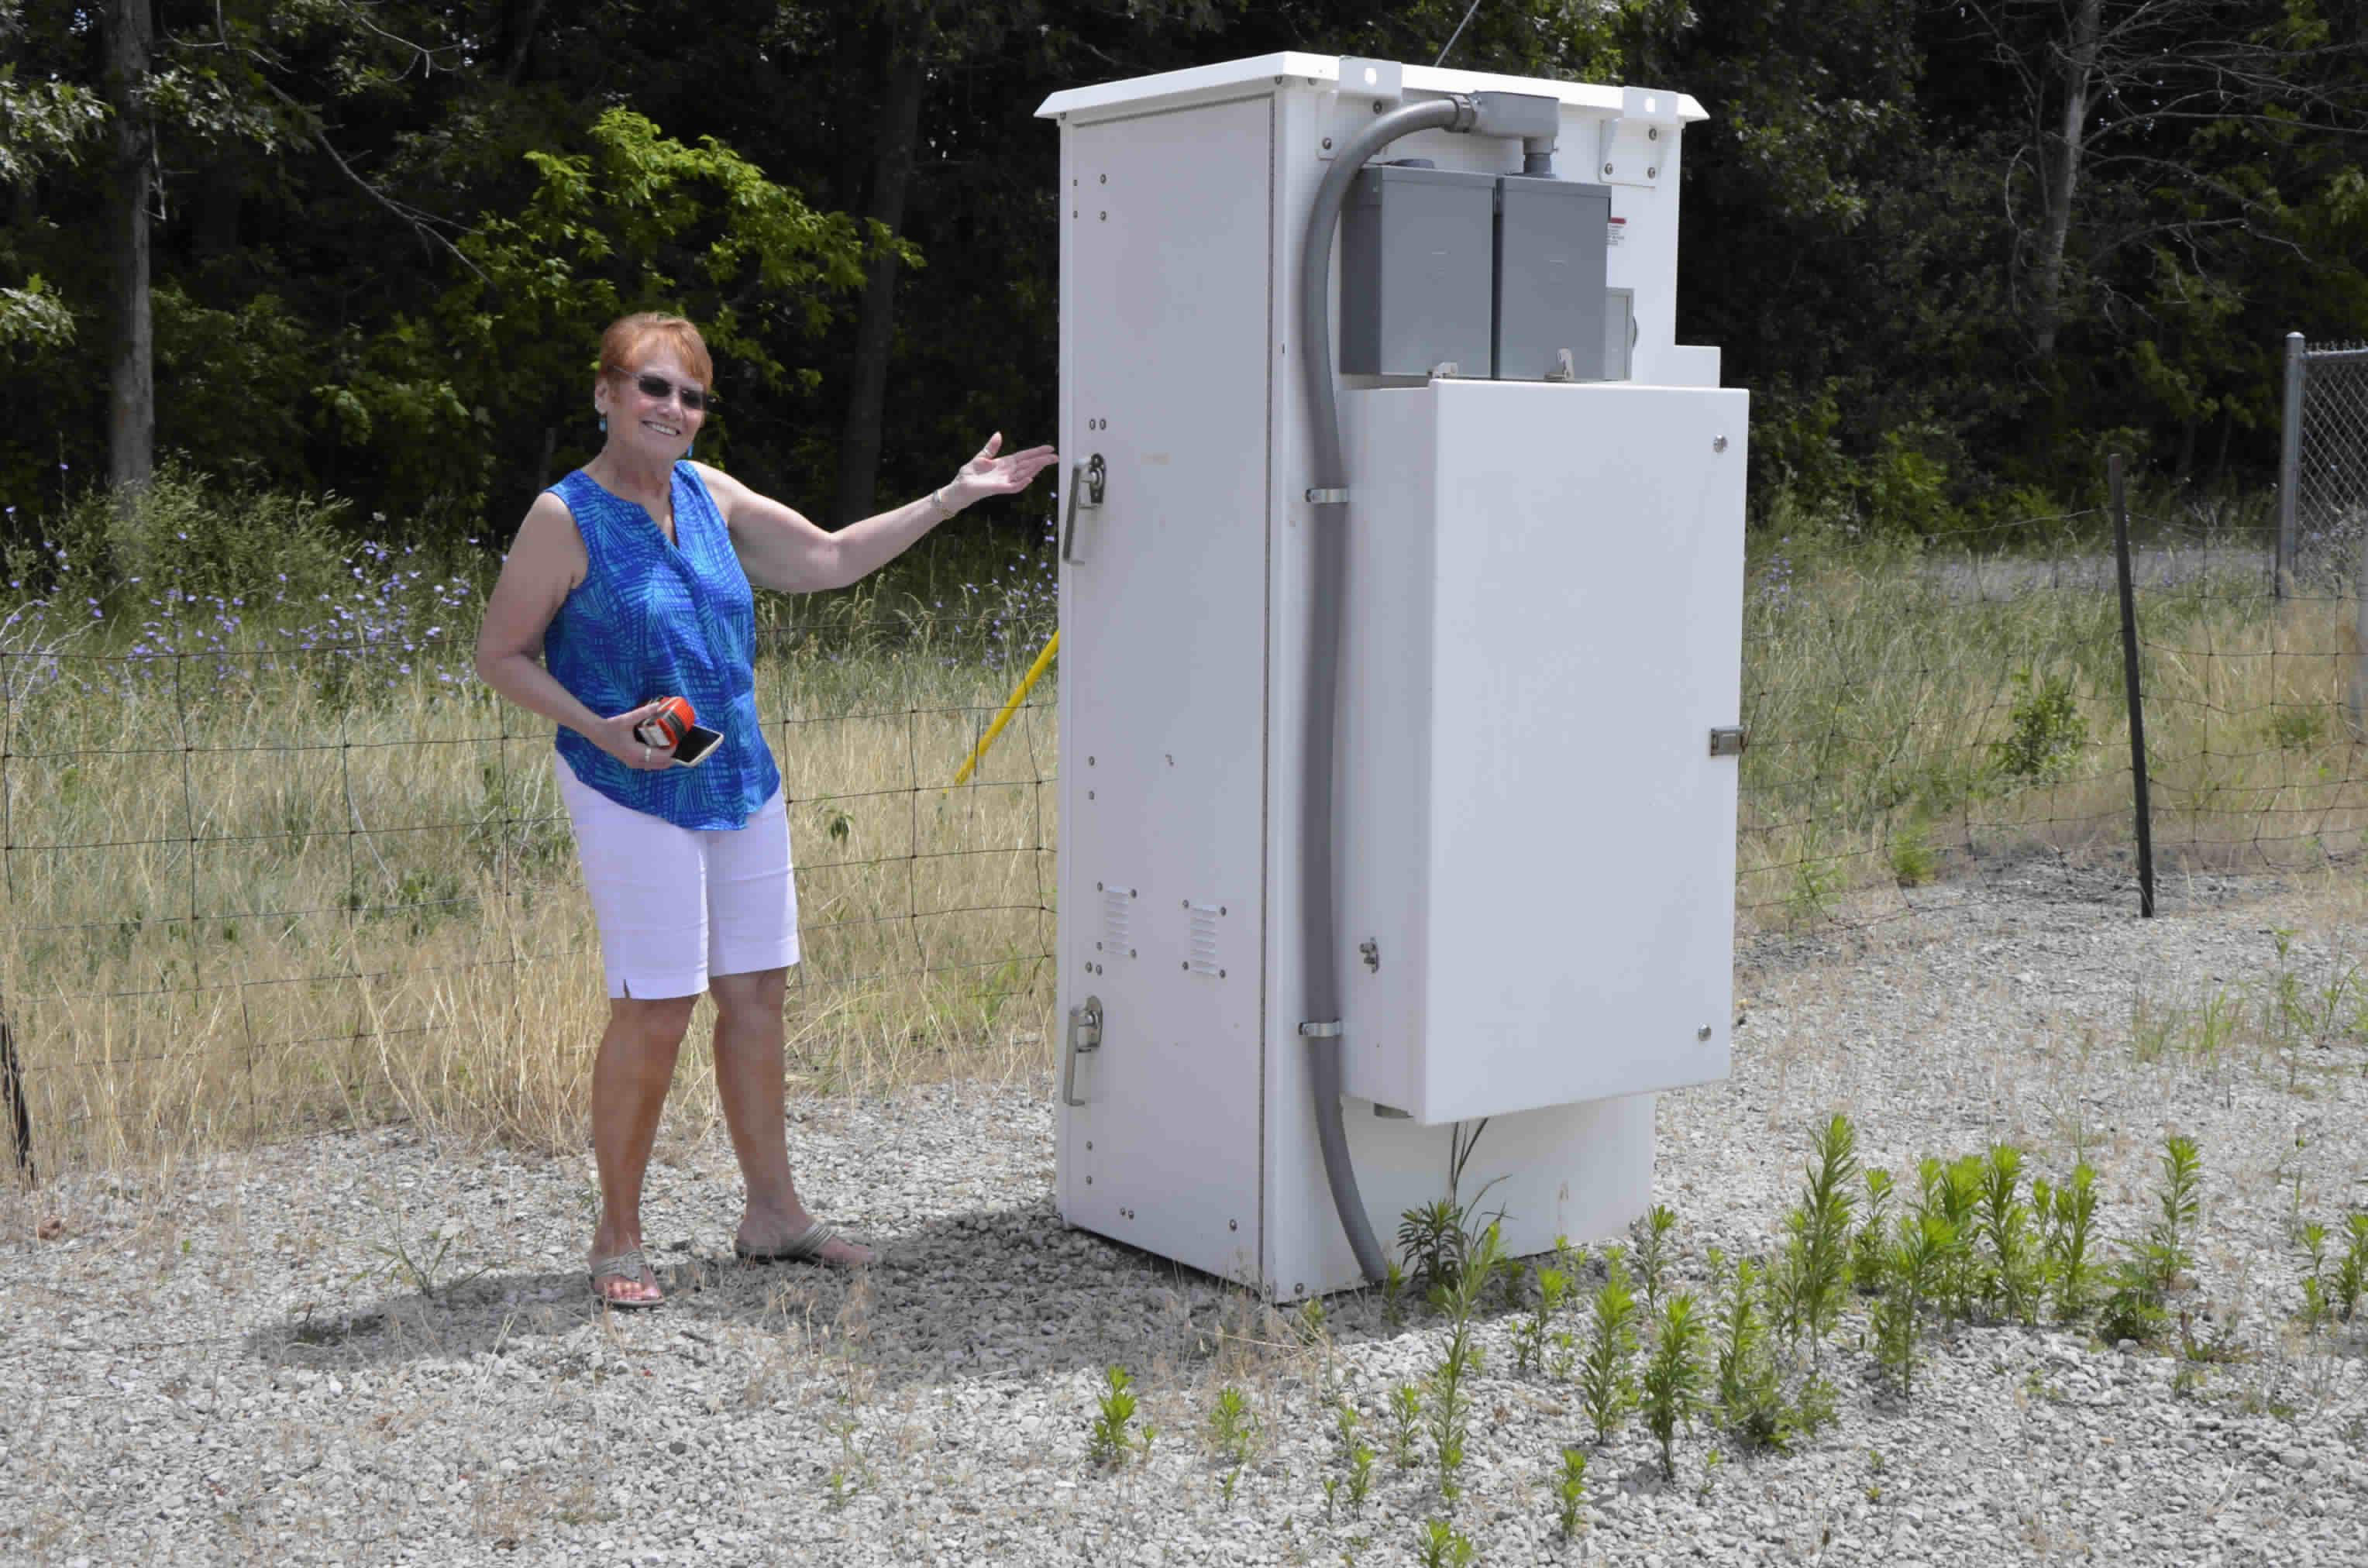 Carole Burke, WB9RUS, Vice President of the Fort Wayne Radio Club (FWRC) with DDB Inc. outside equipment enclosure recently donated by Mike Peters of Peters Broadcast Engineering.